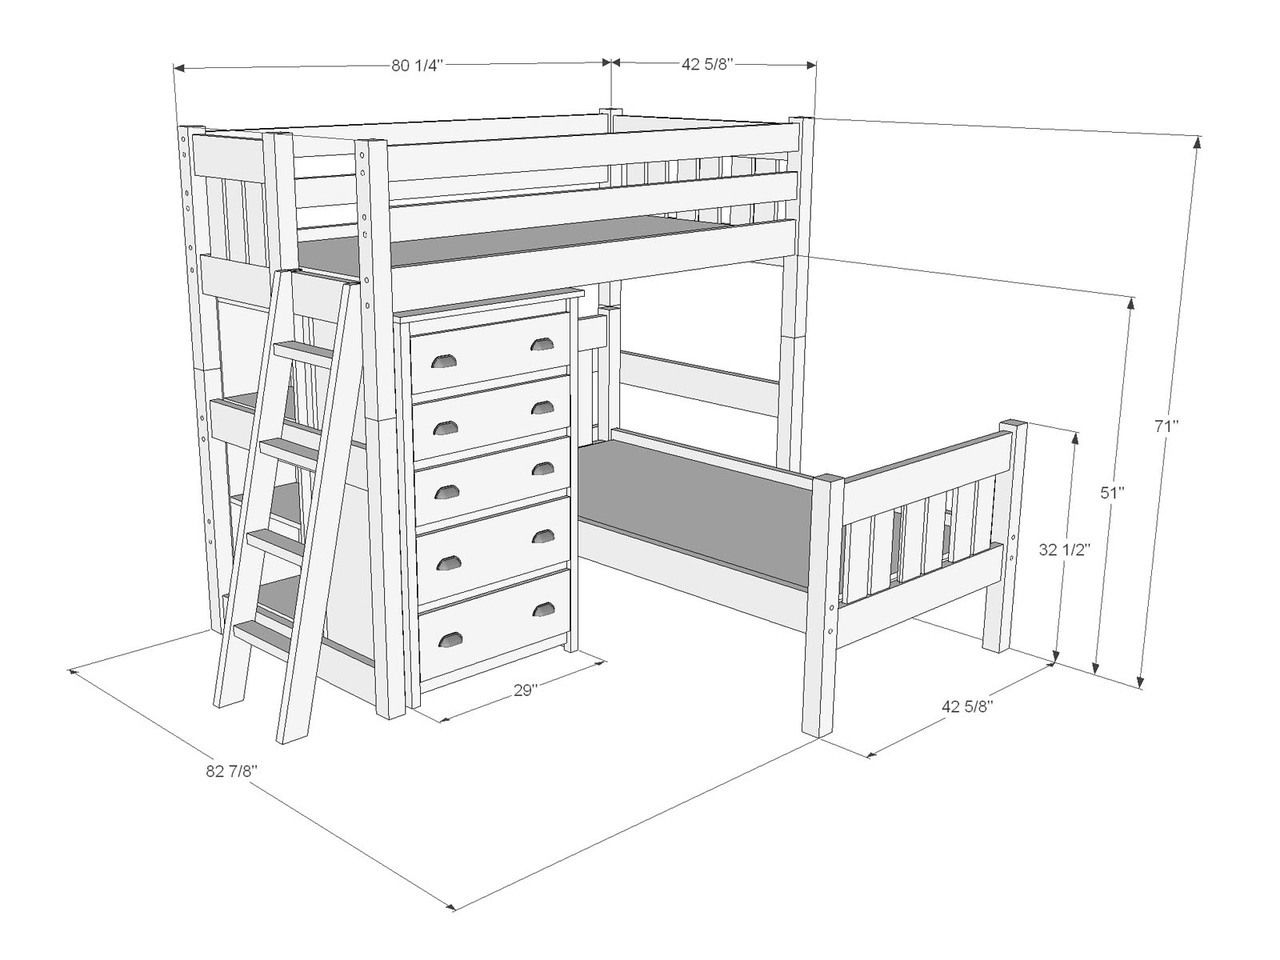 Dimensions Of L Shape Bunk Bed B243 L Shaped Bunk Beds Big Boy Room Bunk Beds